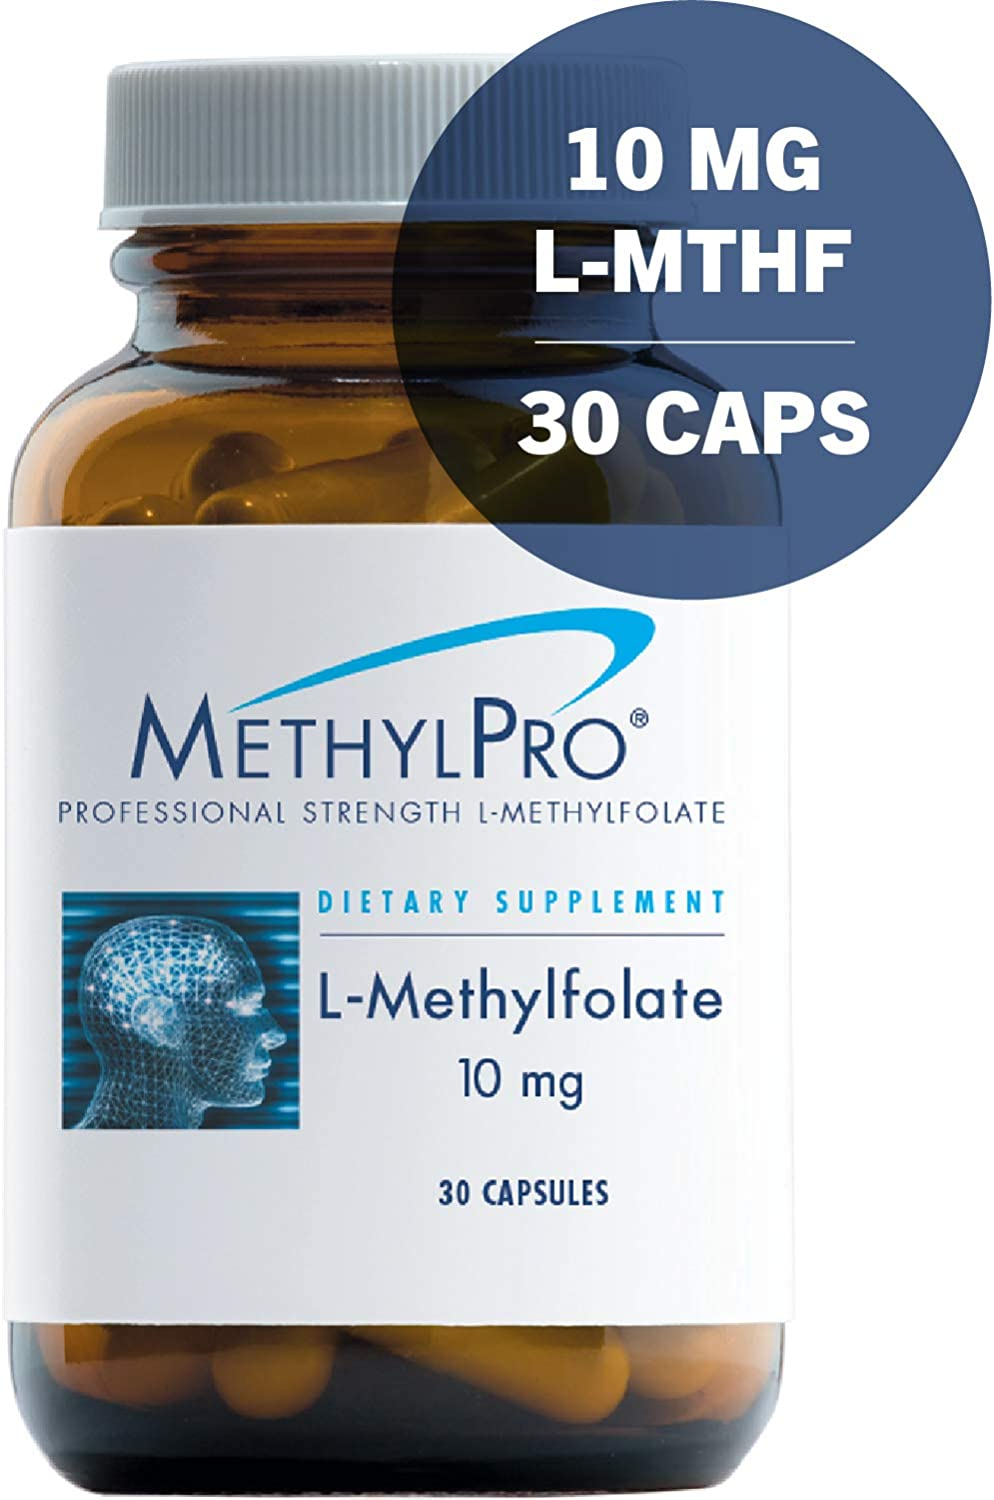 MethylPro 10mg L-Methylfolate 30 Capsules – No Fillers, Professional Strength 10000mcg Active Folate, 5-MTHF for Mood, Homocysteine Methylation Immune Support, Non-GMO Gluten-Free